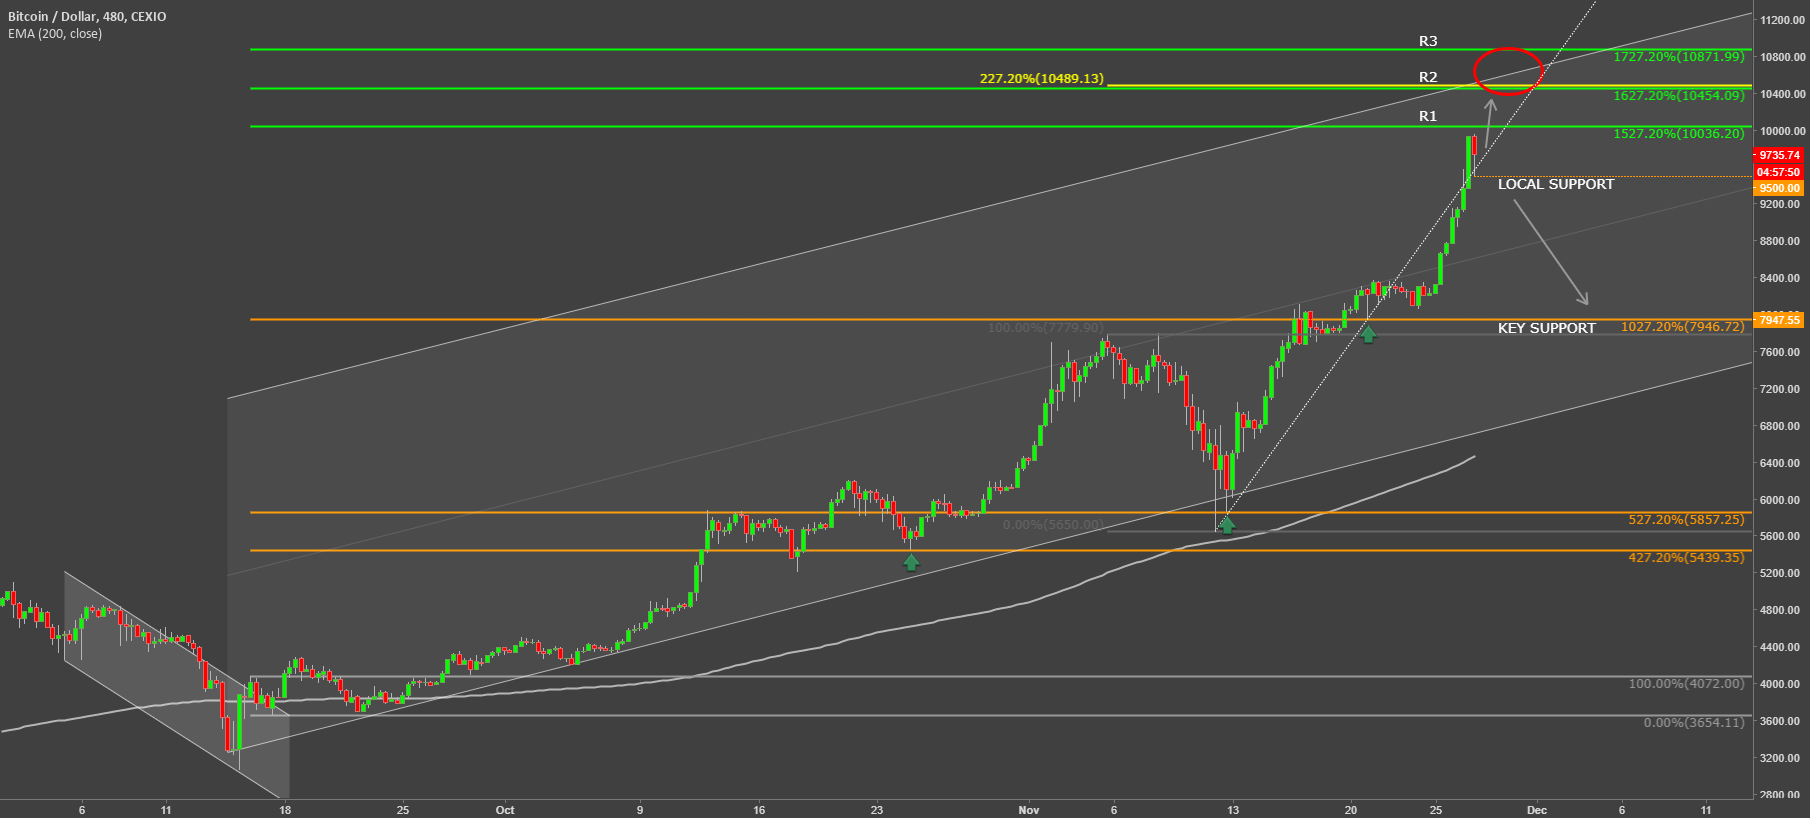 Bitcoin Approaching $10k, Will It Stop?